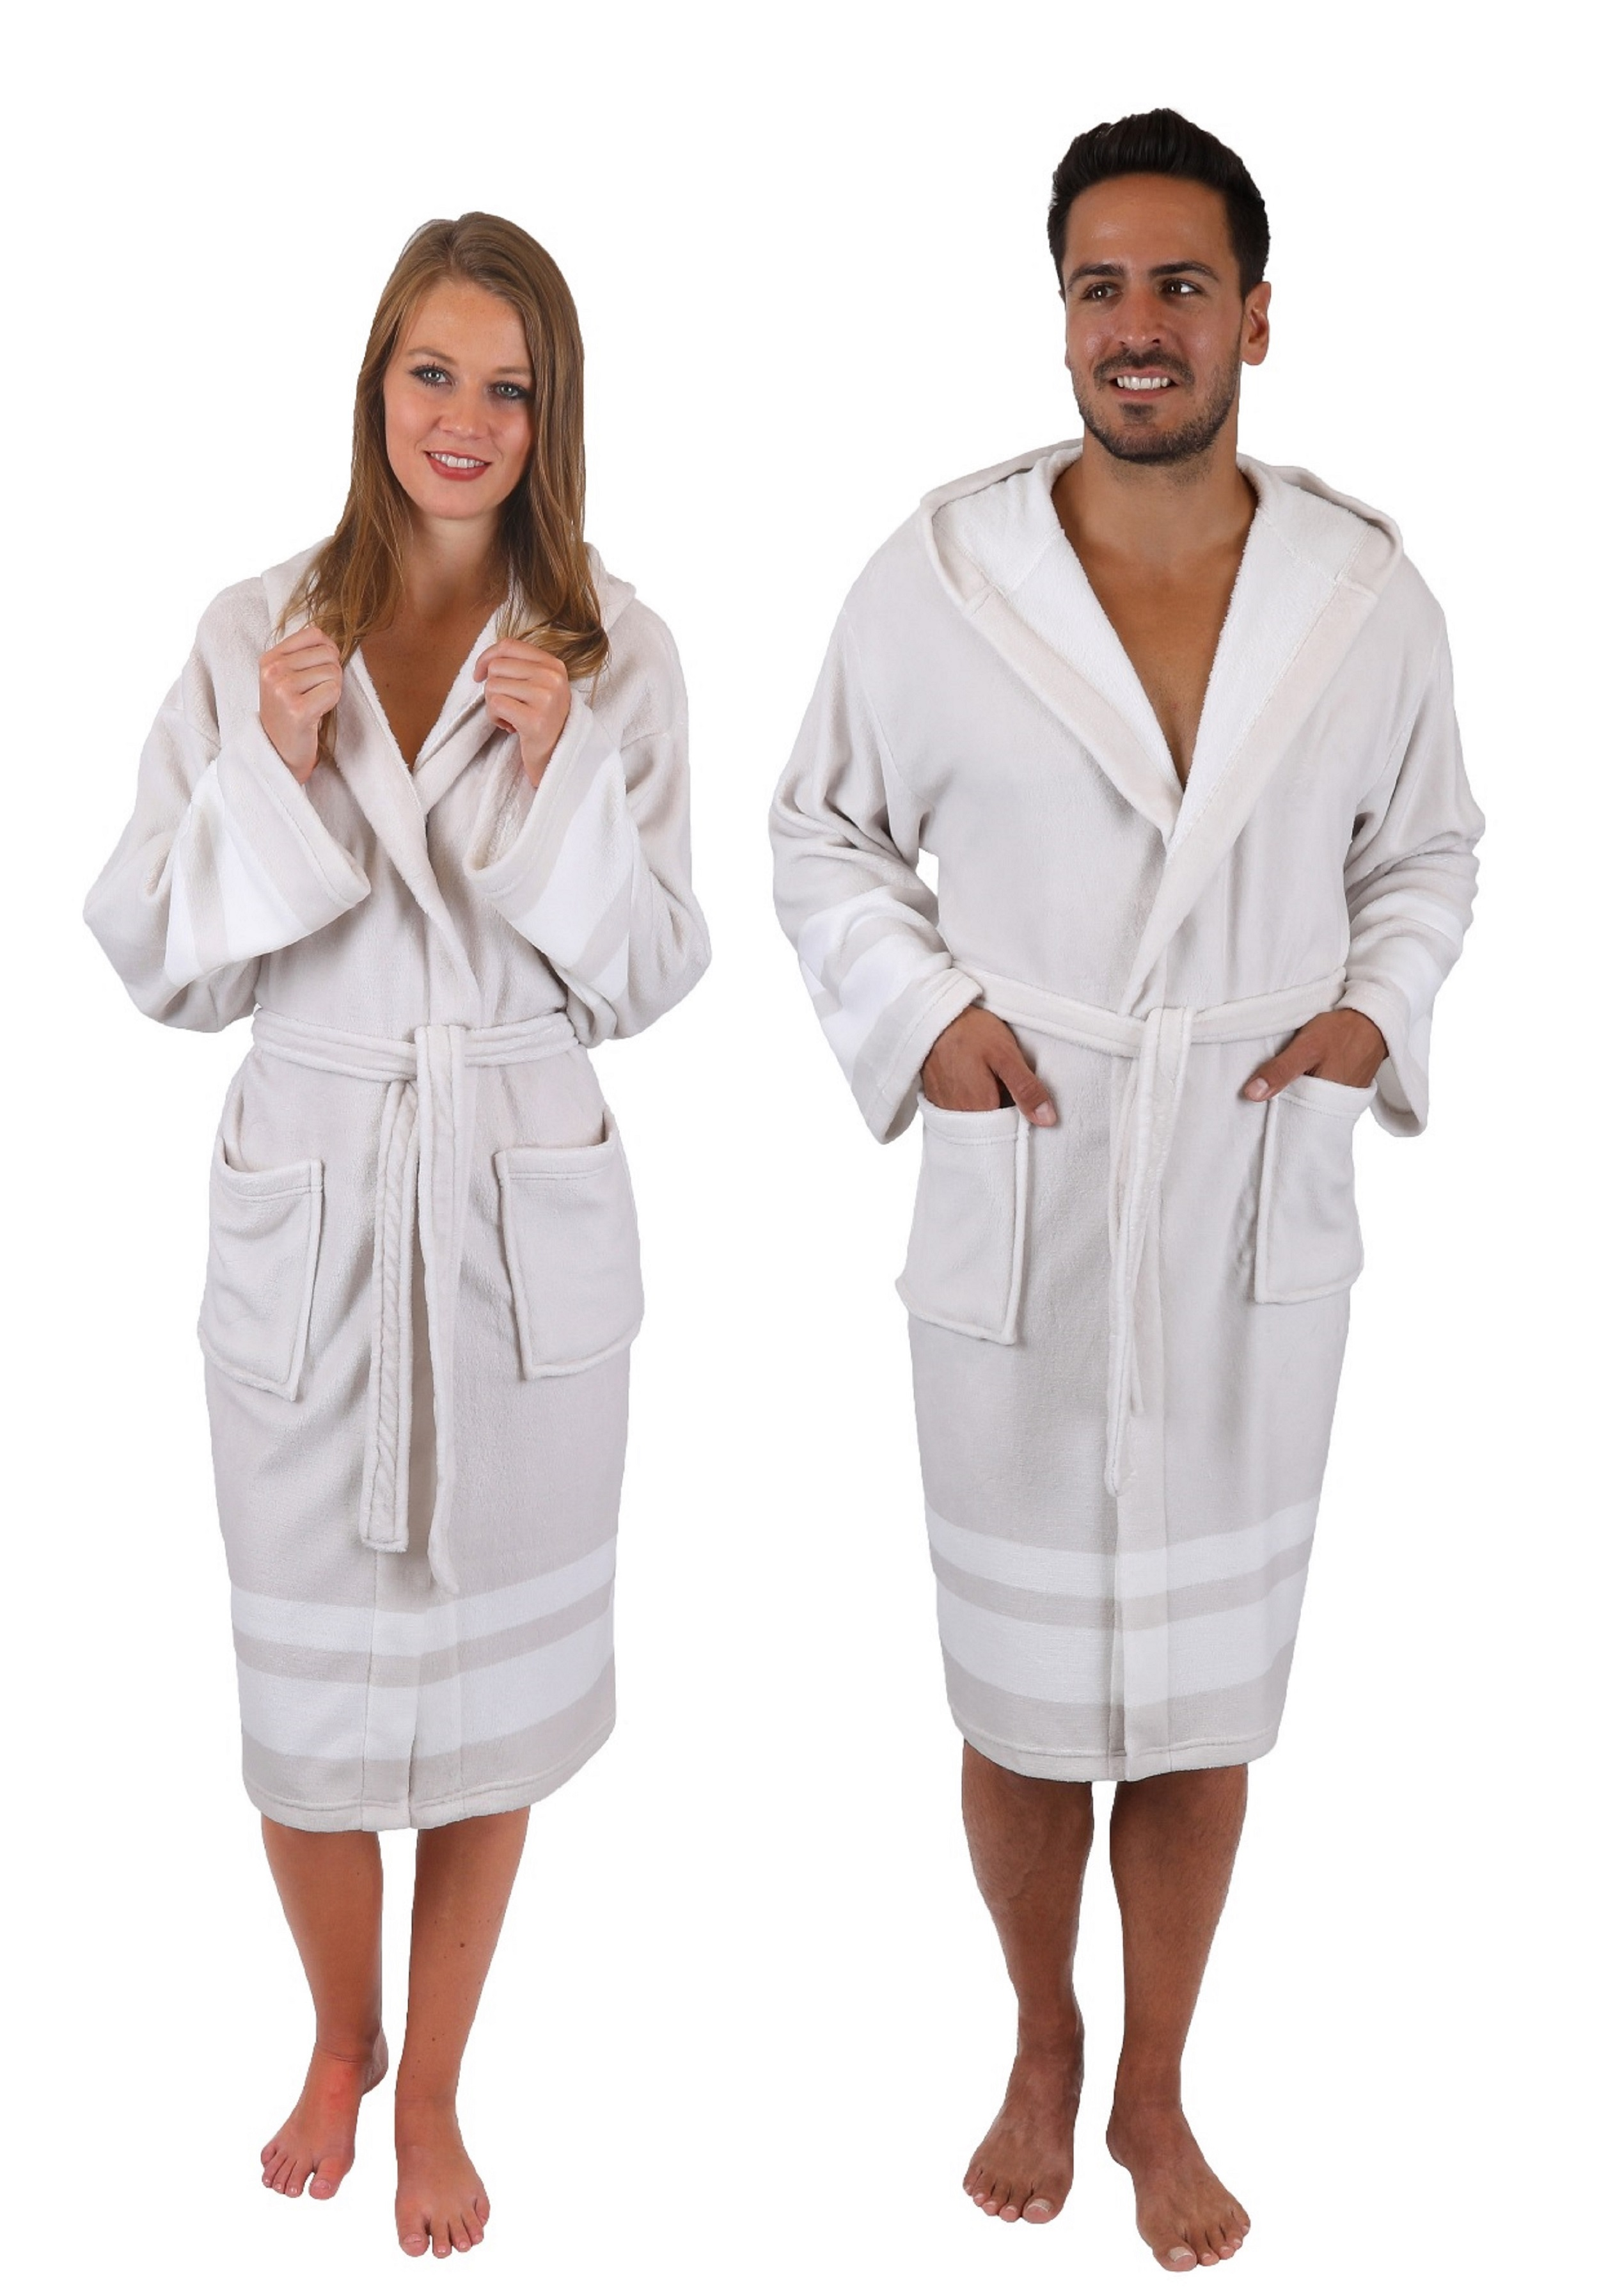 Betz microfibre bath robe MALTA dressing gown for Ladies and Men ...